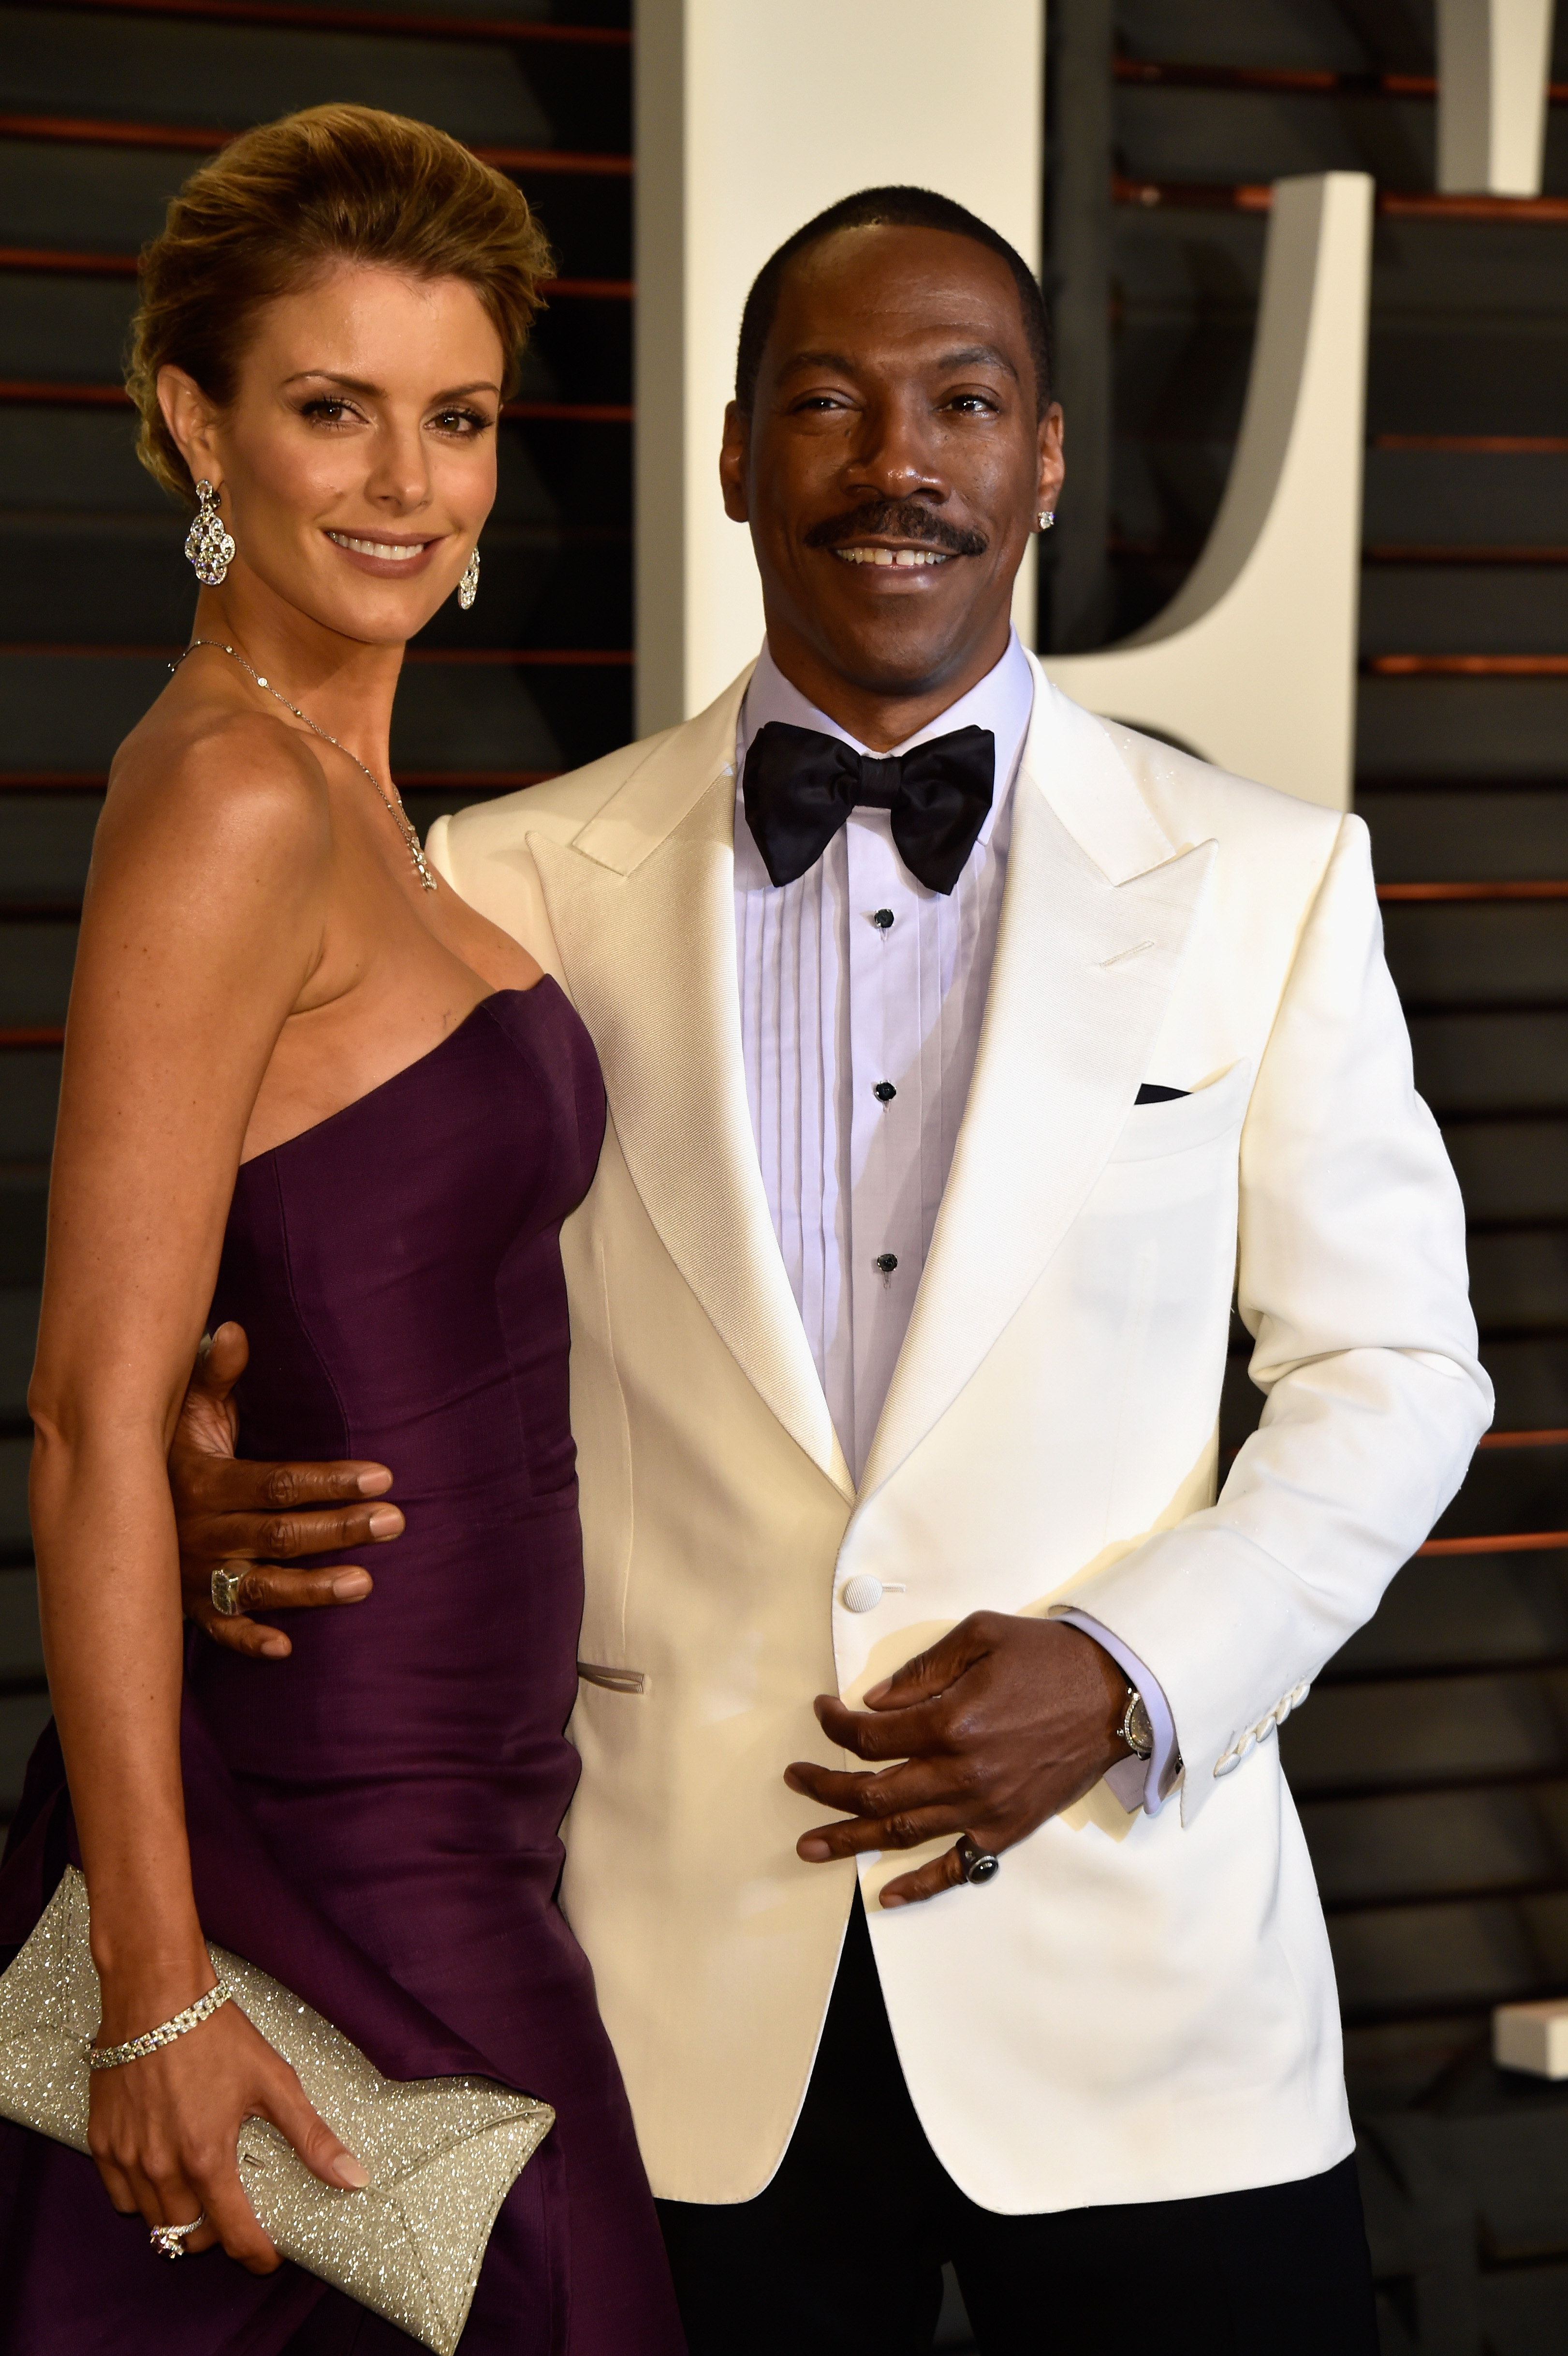 Paige Butcher (L) and actor Eddie Murphy attend the 2015 Vanity Fair Oscar Party hosted by Graydon Carter on February 22, 2015 in Beverly Hills, California. (Photo by Pascal Le Segretain/Getty Images)